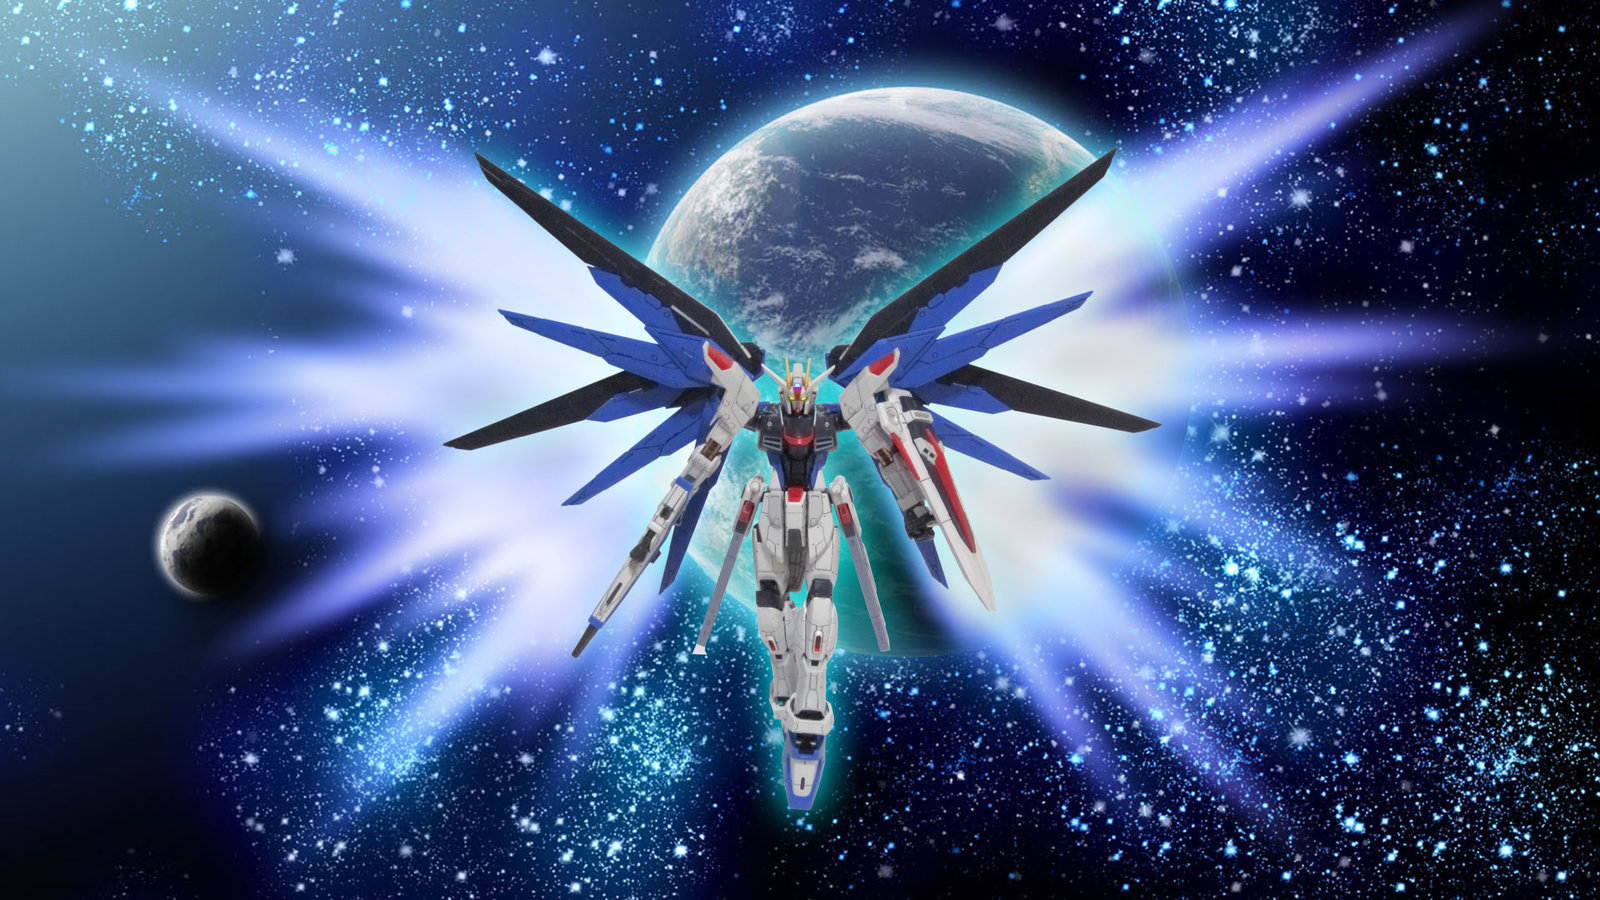 Freedom Gundam by RepX105 1600x900